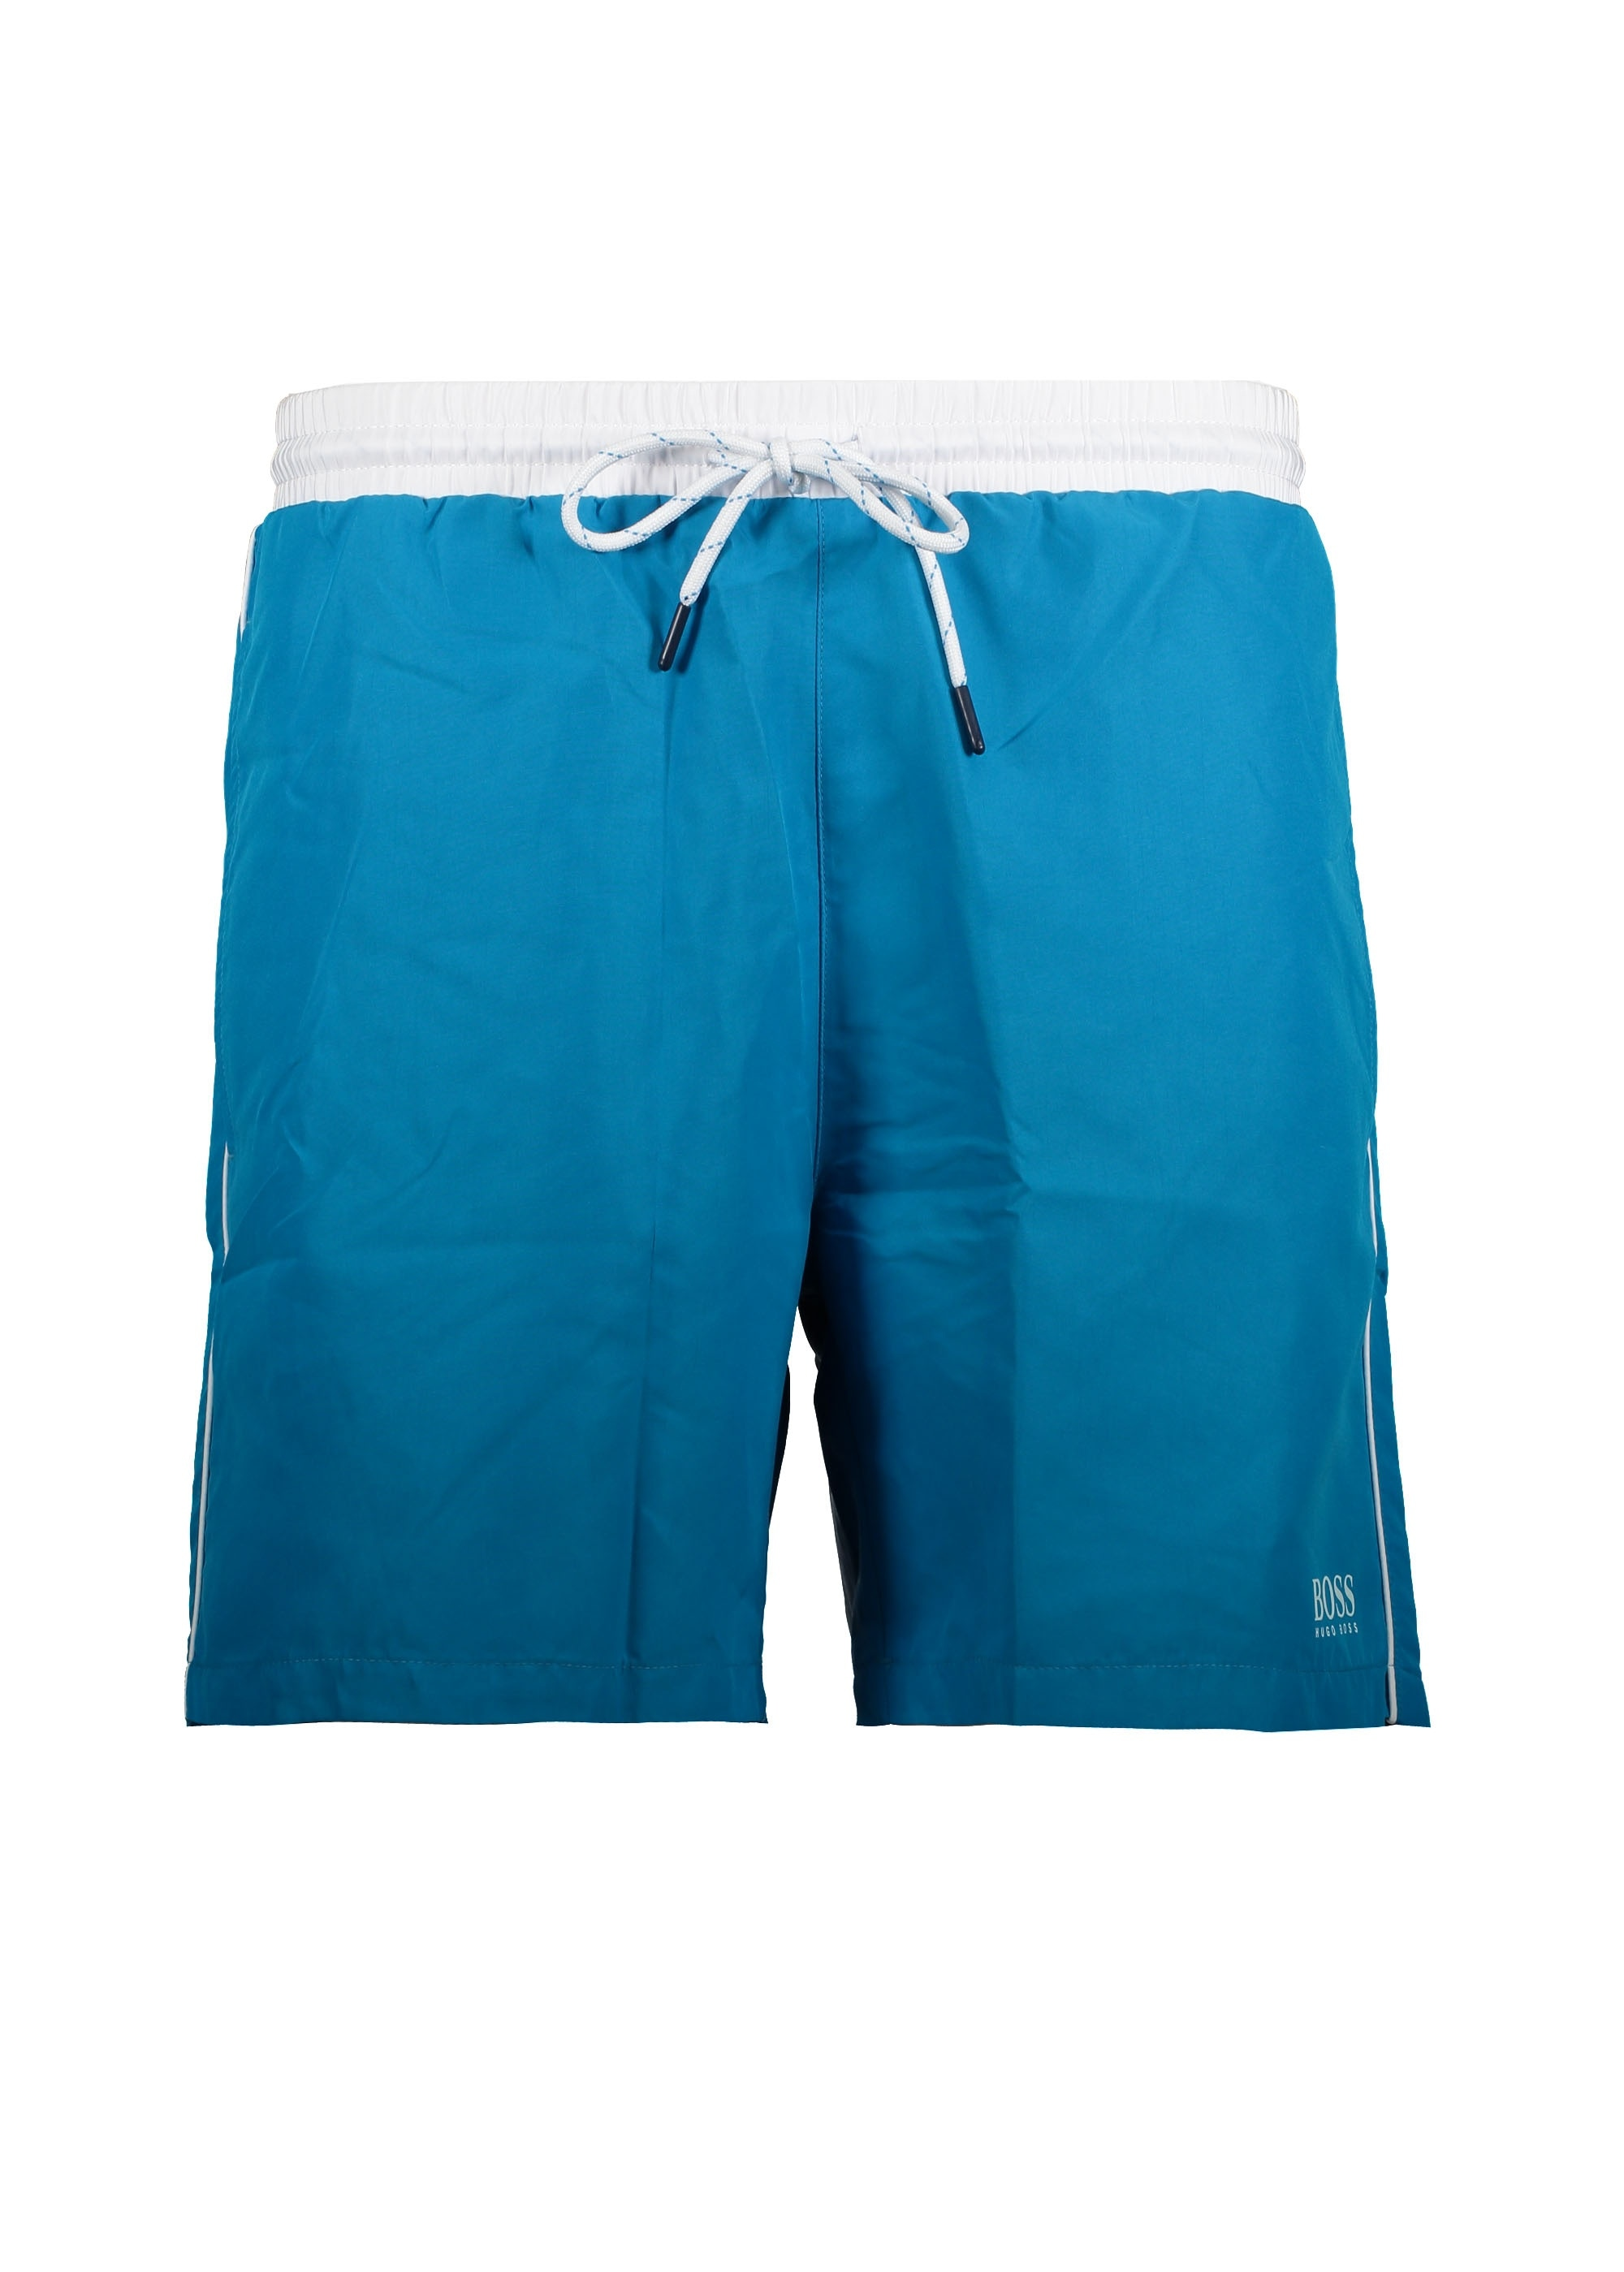 dc19a1095 Hugo Boss Starfish Shorts 441 - Turquoise - Triads Mens from Triads UK